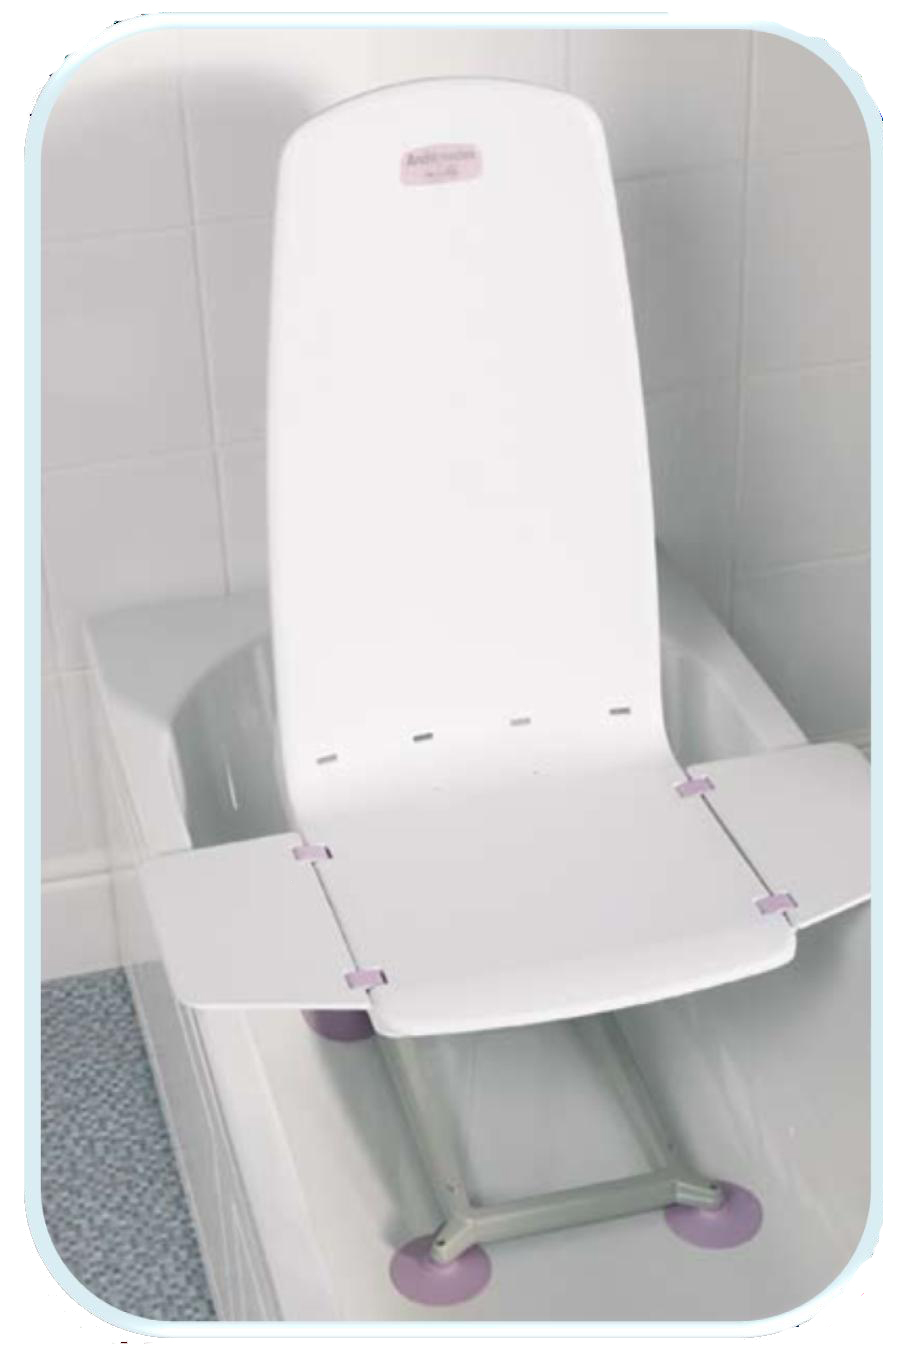 unblocking lift turn bath, bath chair lifts, sonaris bath lift delaware, pediatric bath lifts